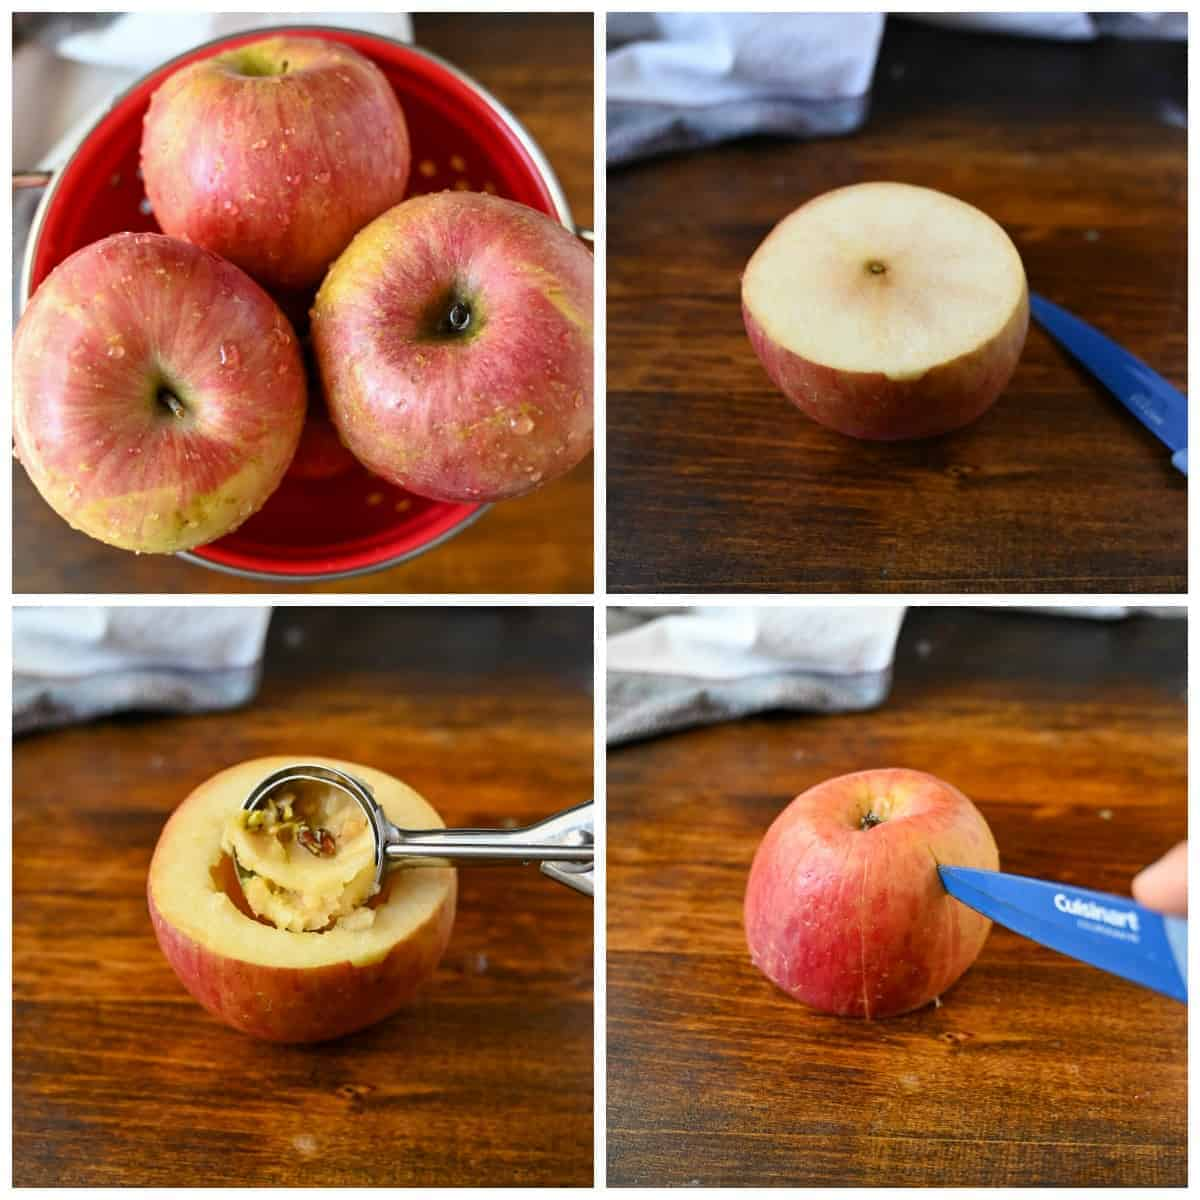 Four process photos. First one, four apples in a colander. Second one, one apple with the top cut off. Second one, the core being removed from the center. Fourth one, A small blue knife citting slices in the sides of the apple.